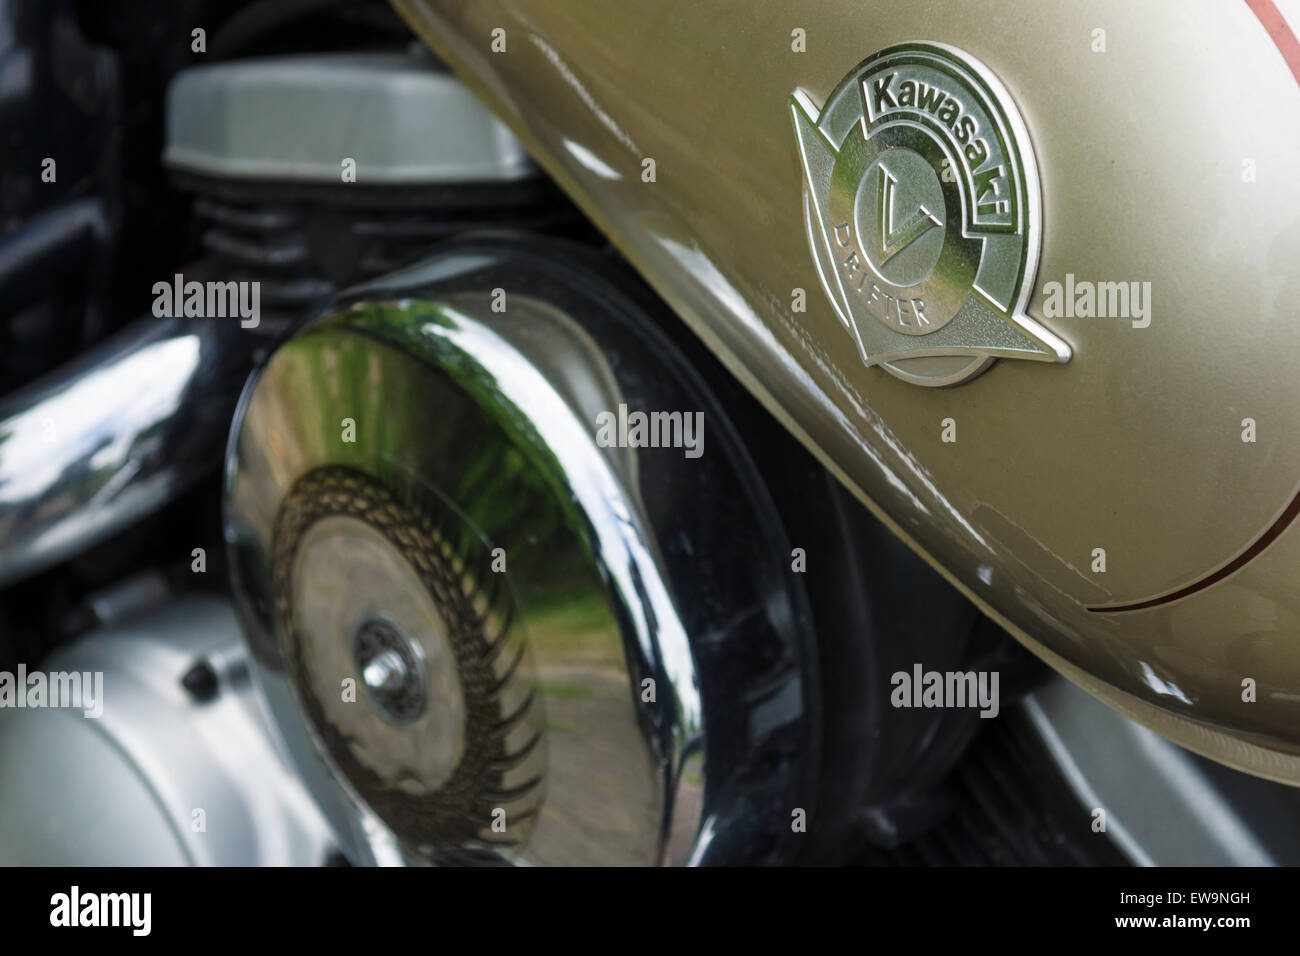 PAAREN IM GLIEN, GERMANY - MAY 23, 2015: Fragment of a motorcycle Kawasaki Vulcan Drifter. The oldtimer show in - Stock Image